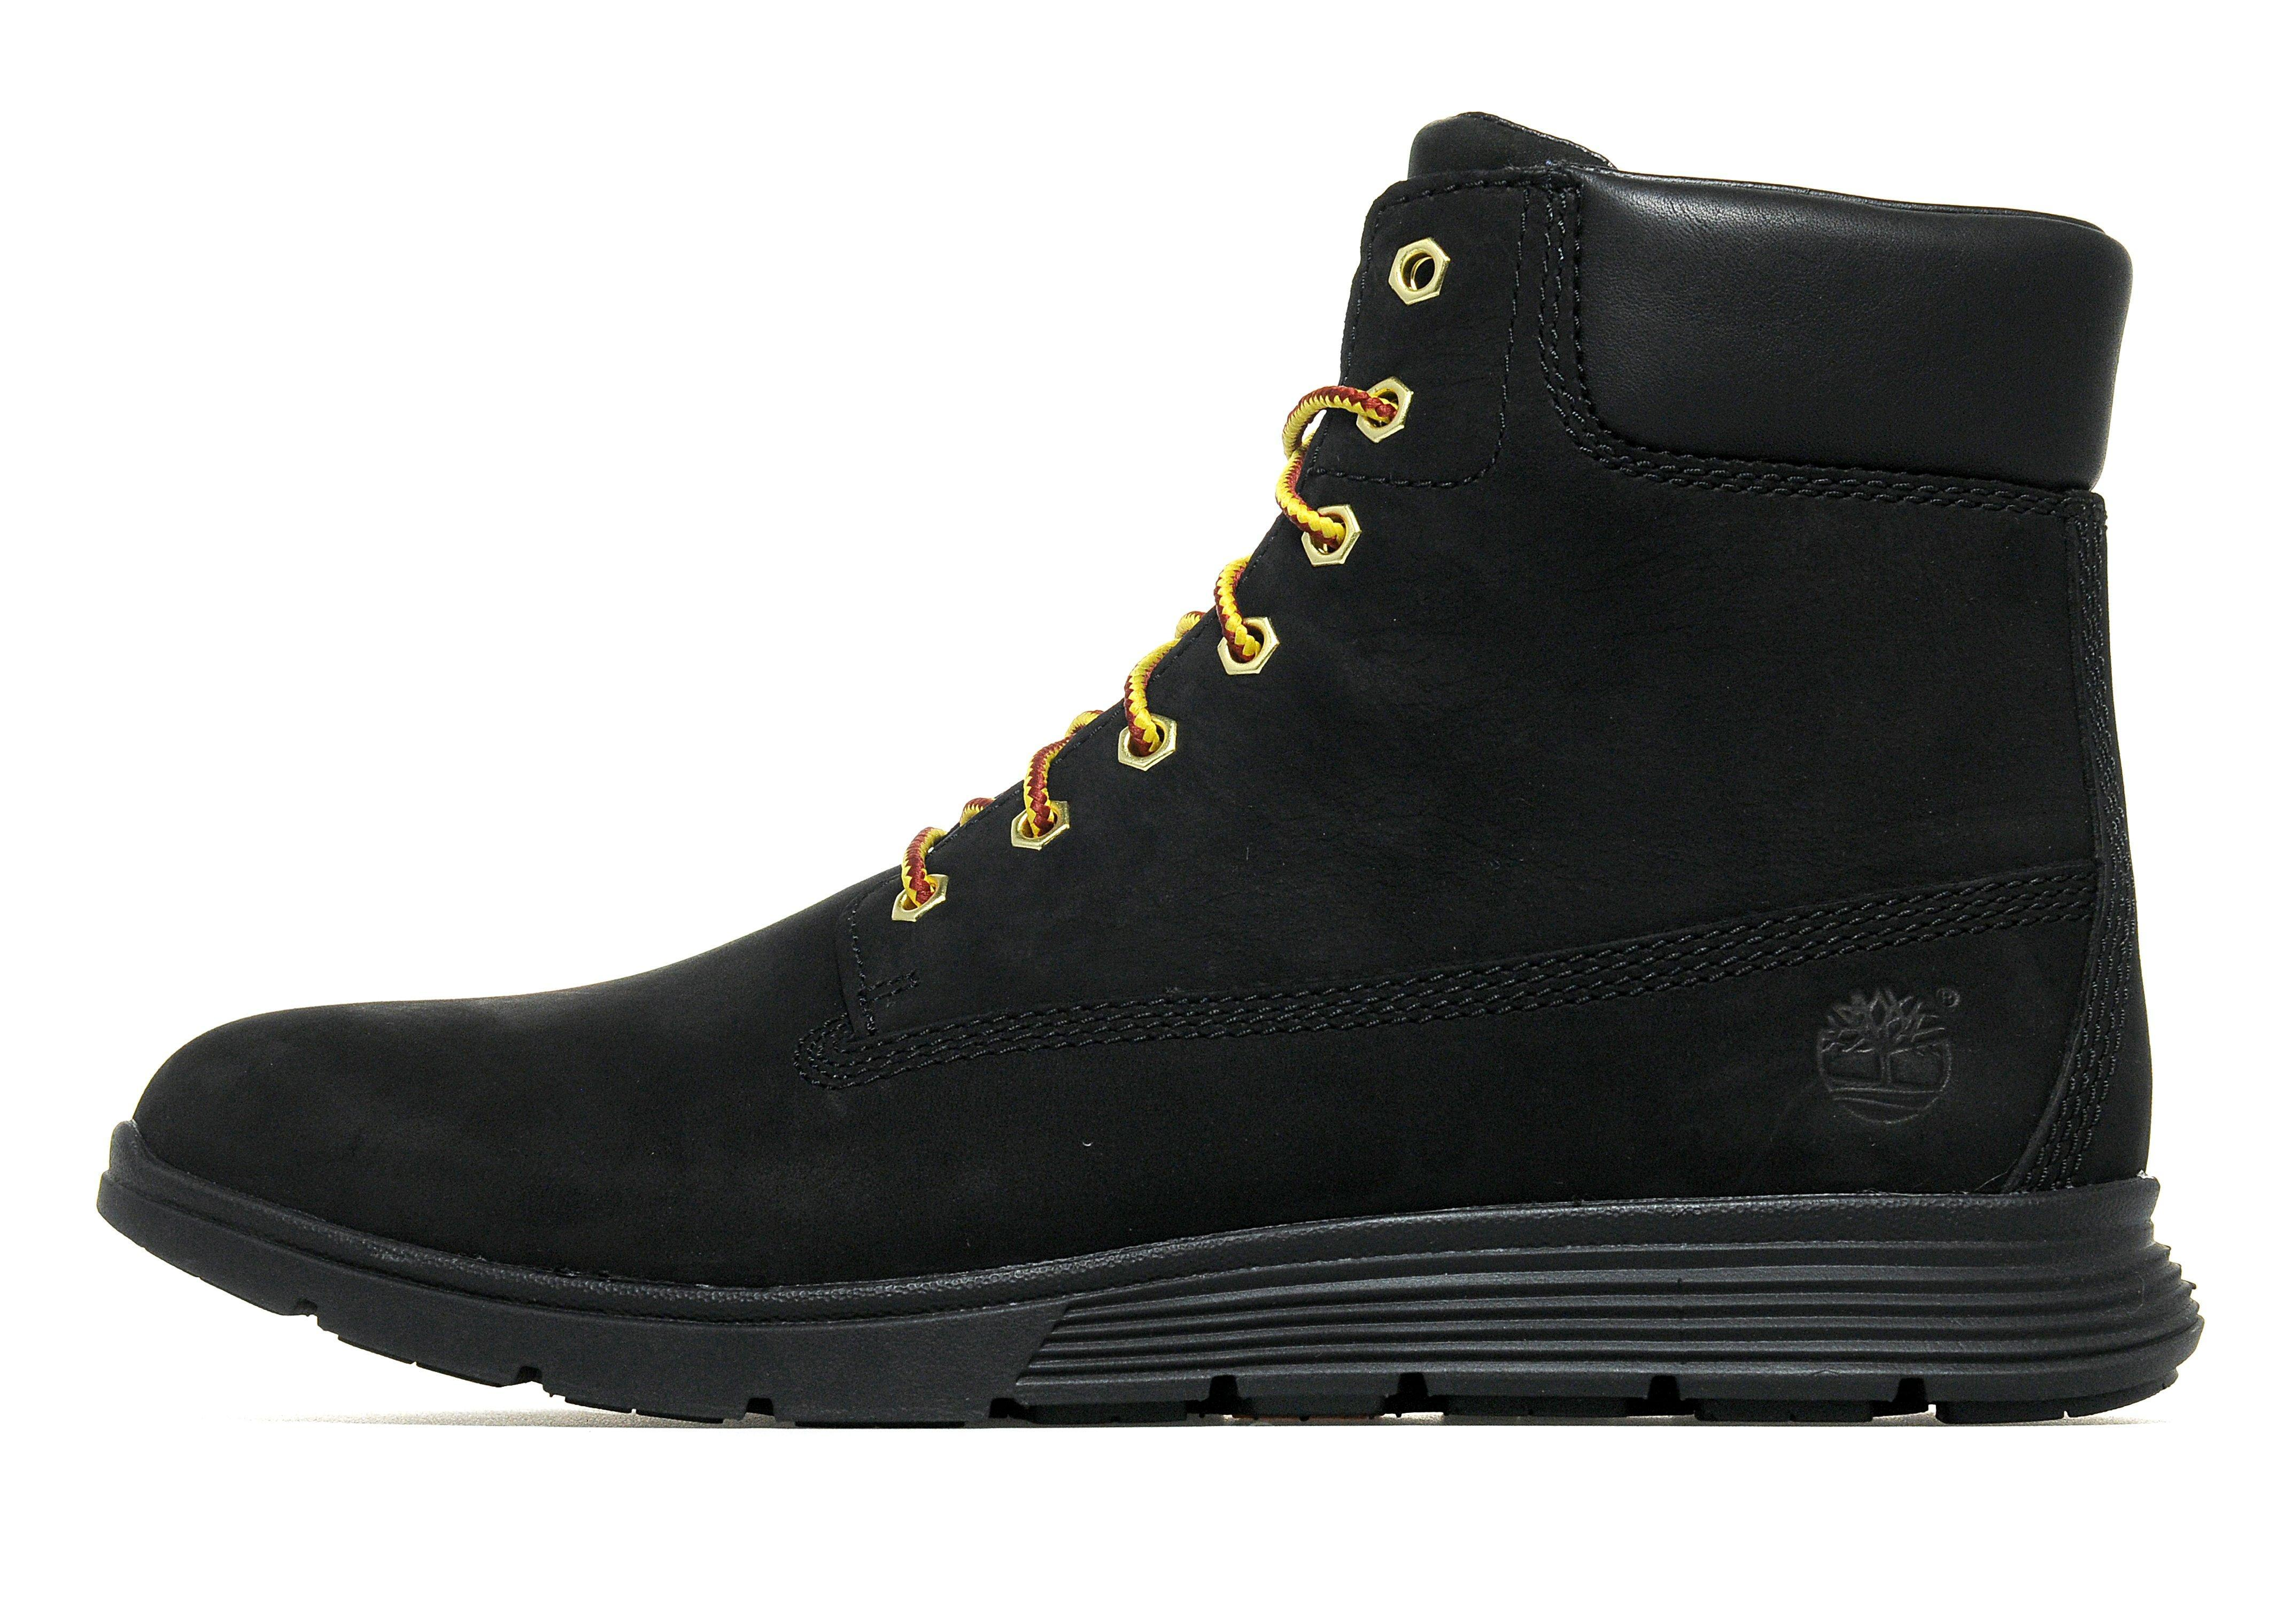 Timberlands Shoes Size